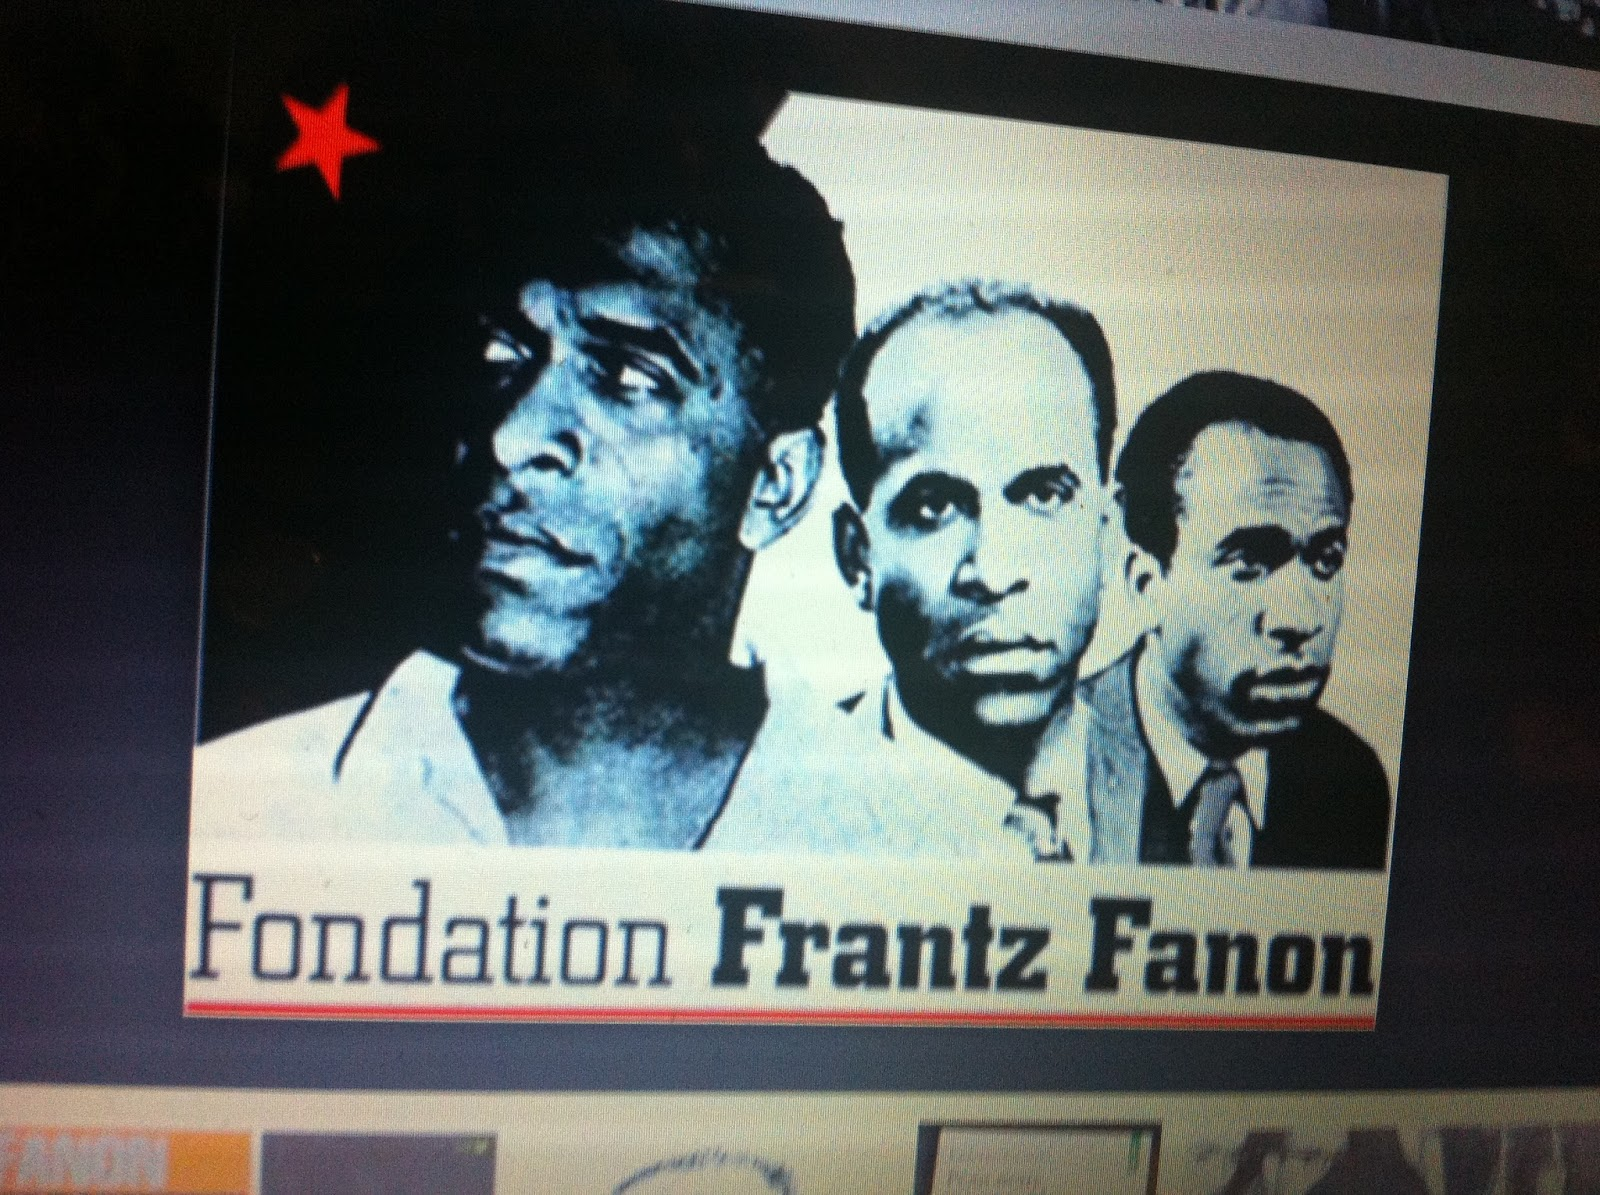 frantz fanon the wretched of the earth essay The wretched of the earth study guide contains a biography of fanon, literature essays, quiz questions, major themes, characters, and a full summary and analysis about the wretched of the earth the wretched of the earth summary.